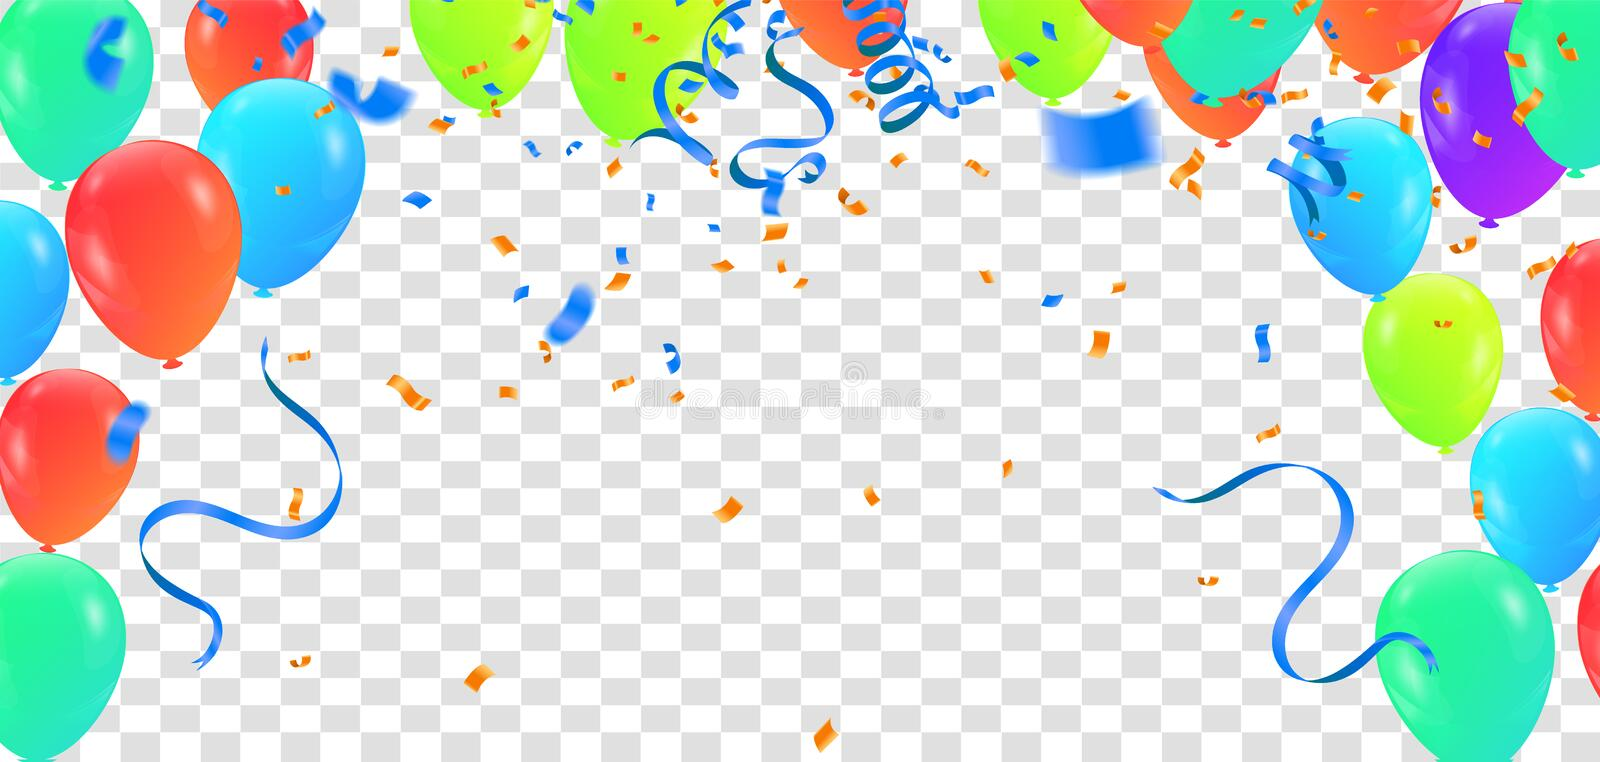 Birthday balloon and celebration banner party happy new year celebration festival background. NYE stock illustration